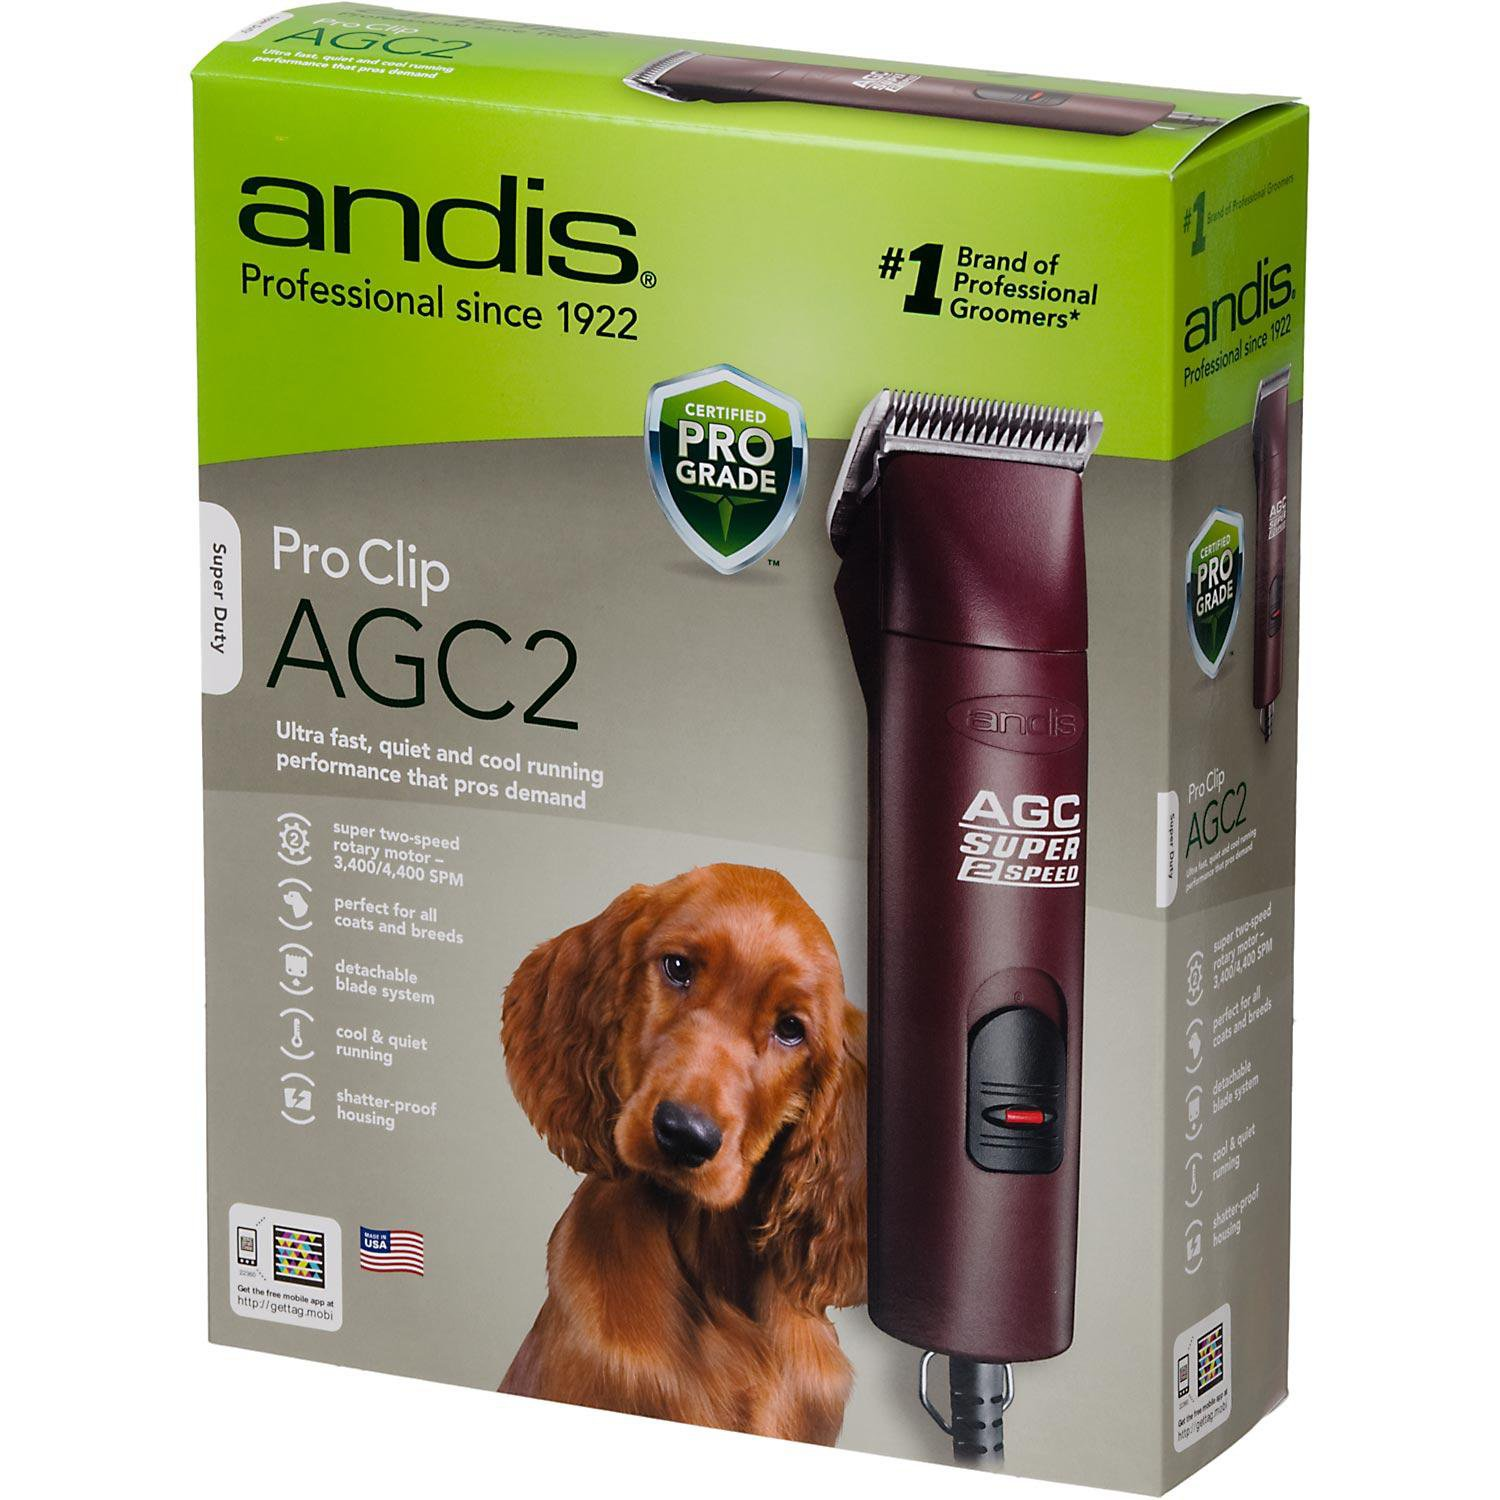 Andis AGC2 Super 2-Speed Professional Clipper with Detachable Blade